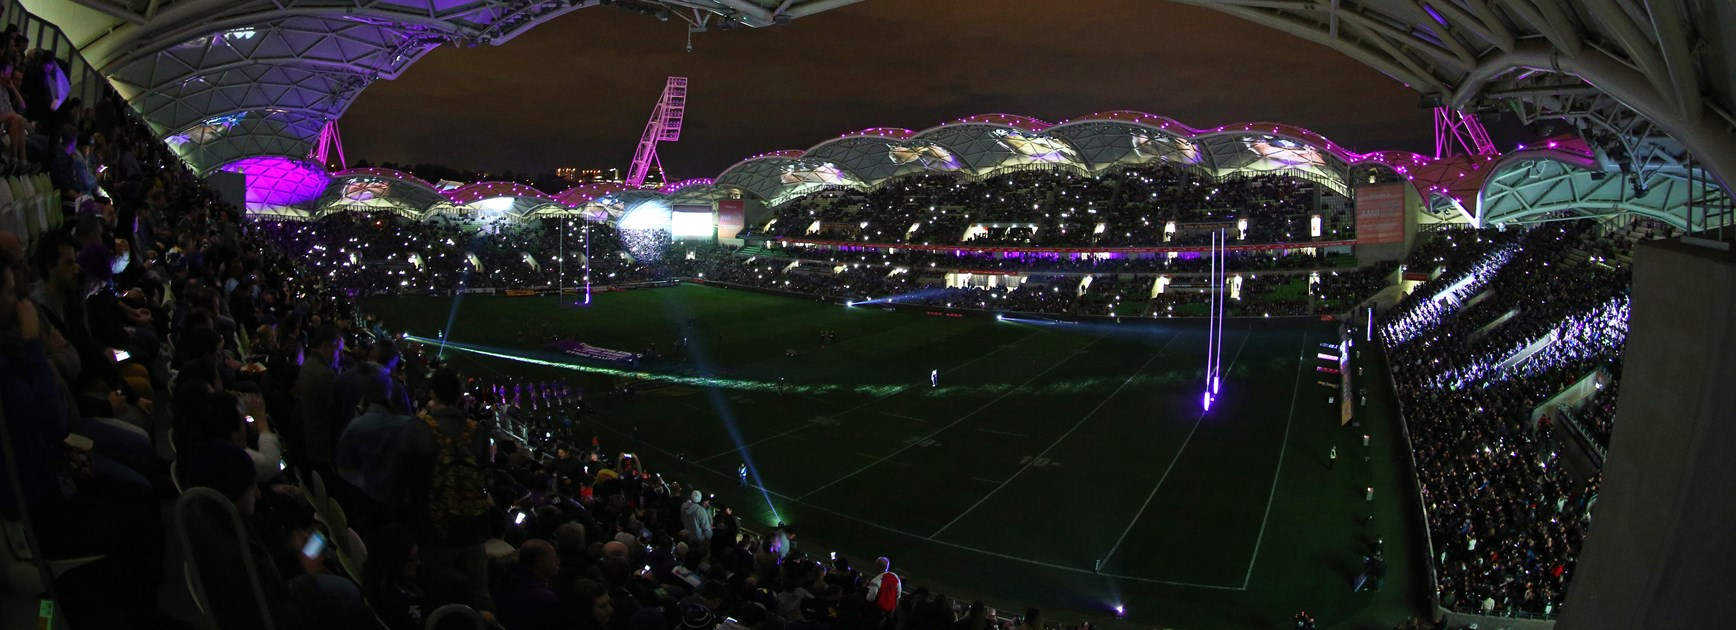 AAMI Park shortlisted for Venue of the Year